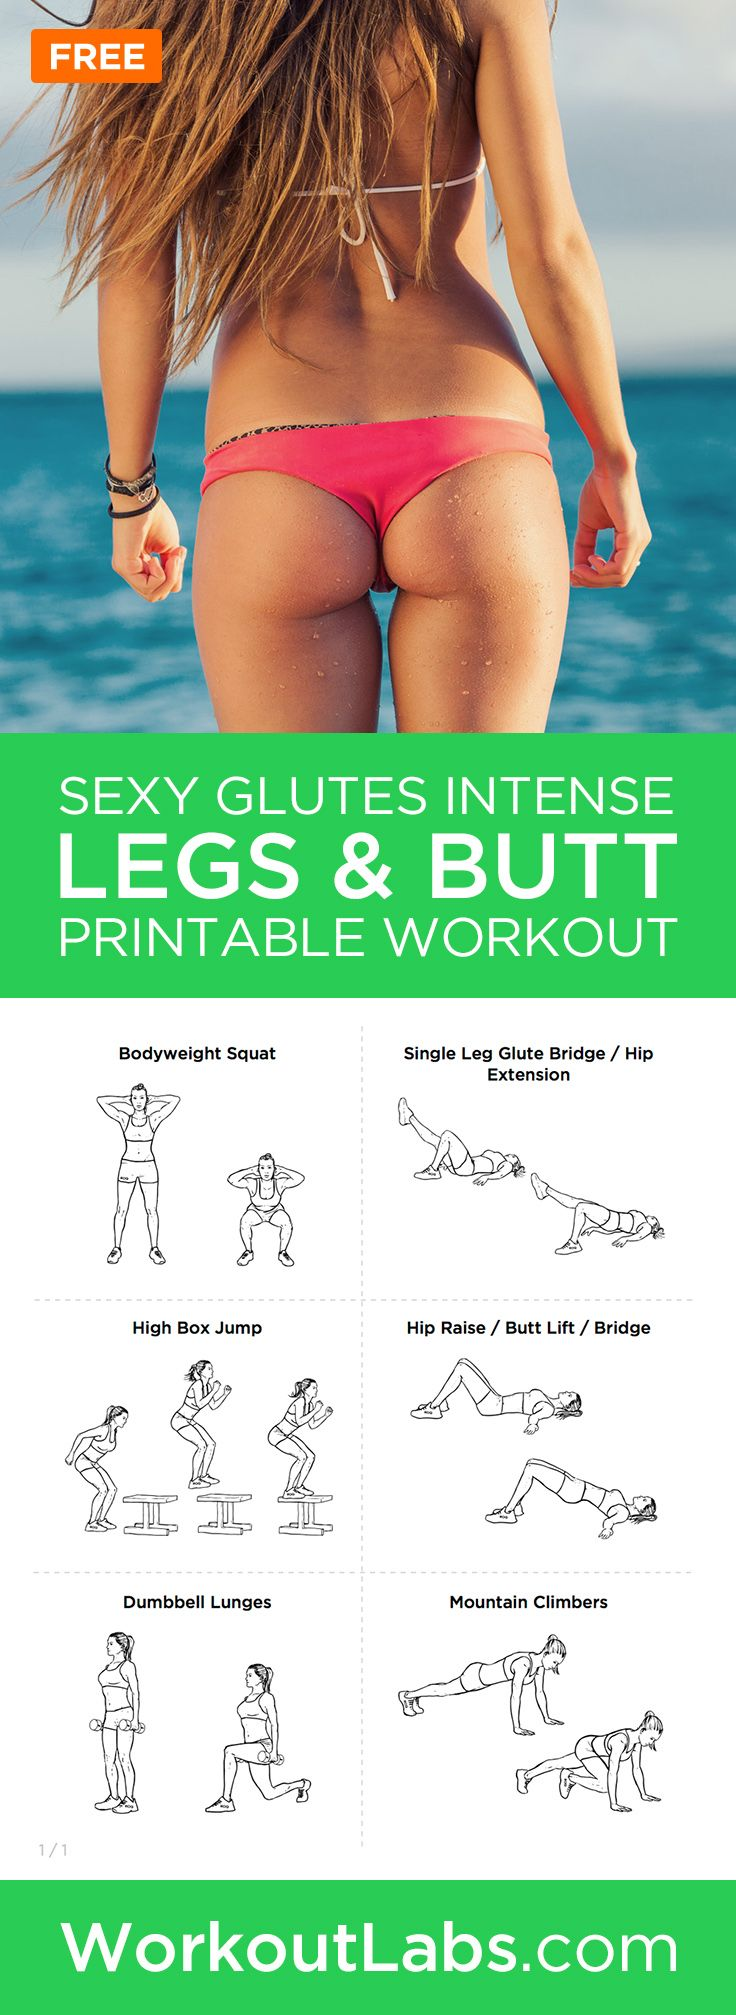 Sexy Glutes Intense Legs & Butt Printable Toning Workout